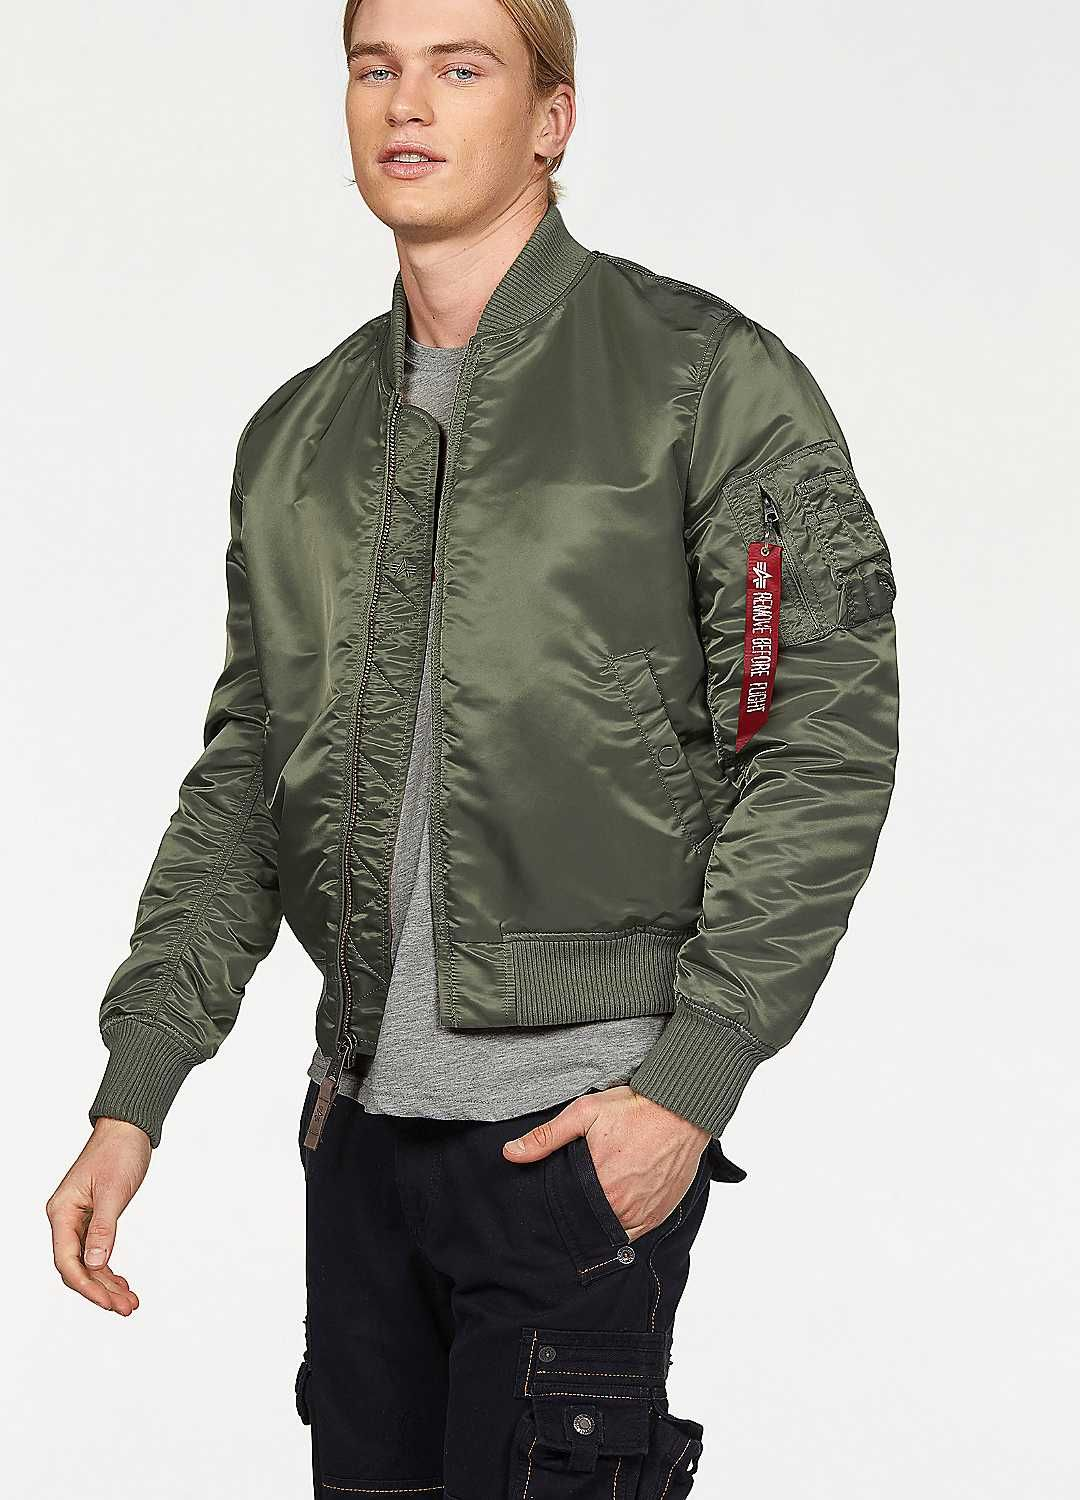 Pin on Bomber